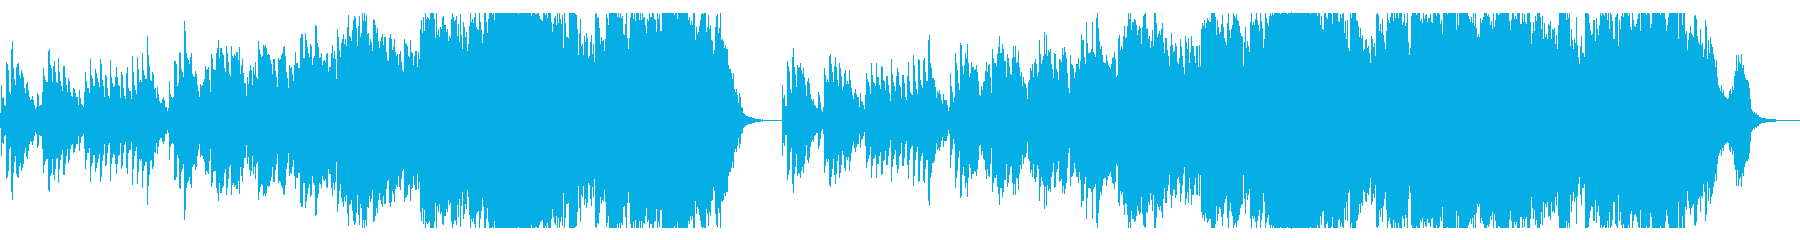 A small violin formation that is painfully moving's reproduced waveform